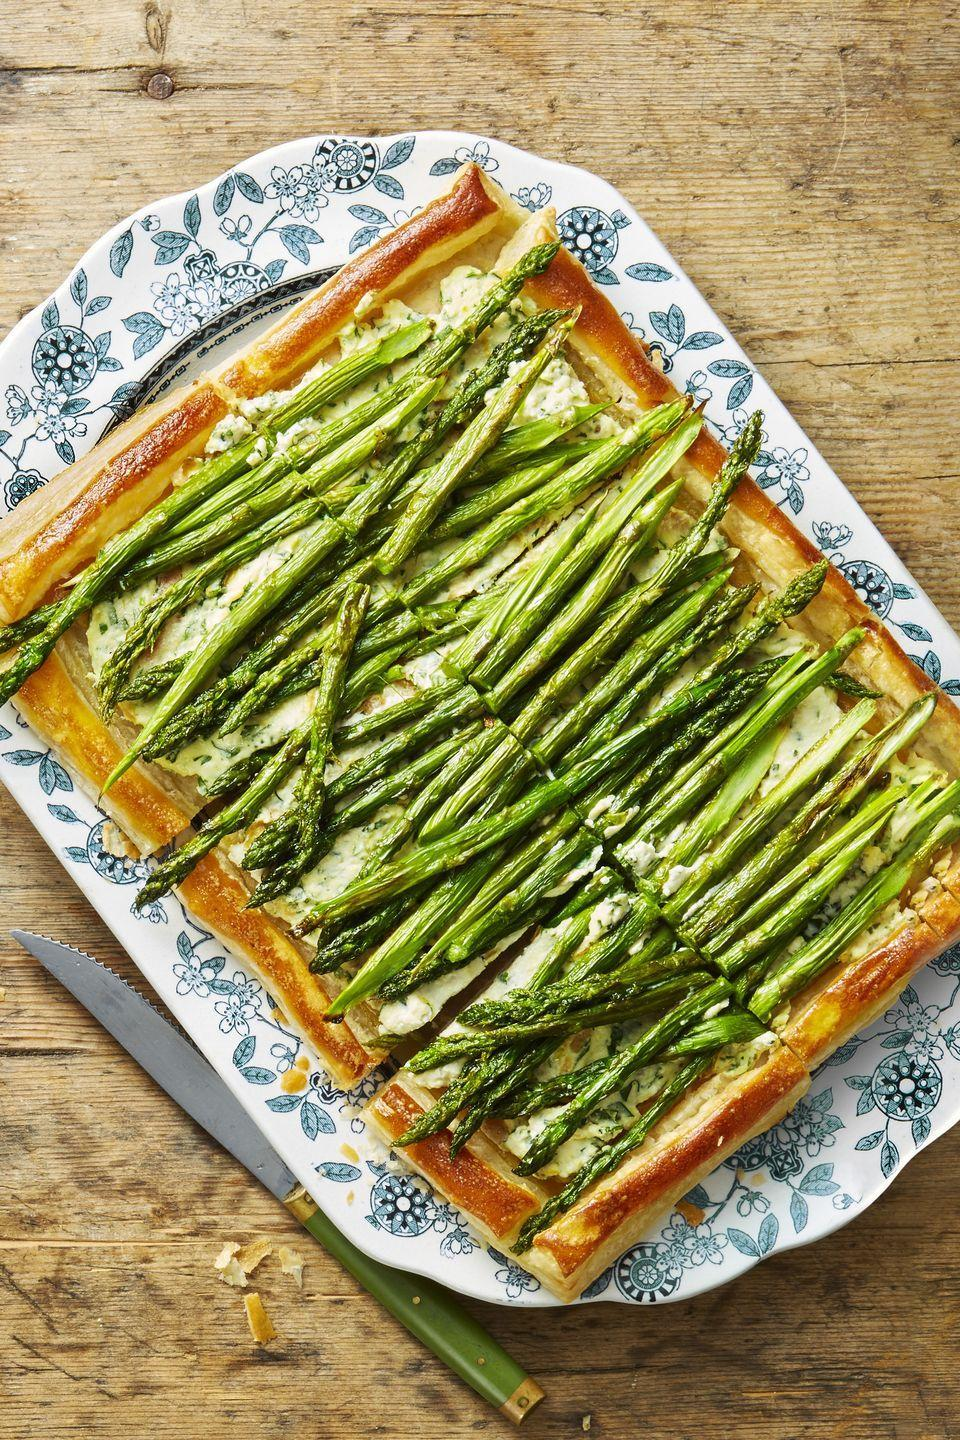 """<p>The easiest (and tastiest) way to get your filling of veggies at the holiday feast. </p><p><em><a href=""""https://www.goodhousekeeping.com/food-recipes/a48174/roasted-asparagus-and-ricotta-tart-recipe/"""" rel=""""nofollow noopener"""" target=""""_blank"""" data-ylk=""""slk:Get the recipe for Roasted Asparagus and Ricotta Tart »"""" class=""""link rapid-noclick-resp"""">Get the recipe for Roasted Asparagus and Ricotta Tart »</a></em></p>"""